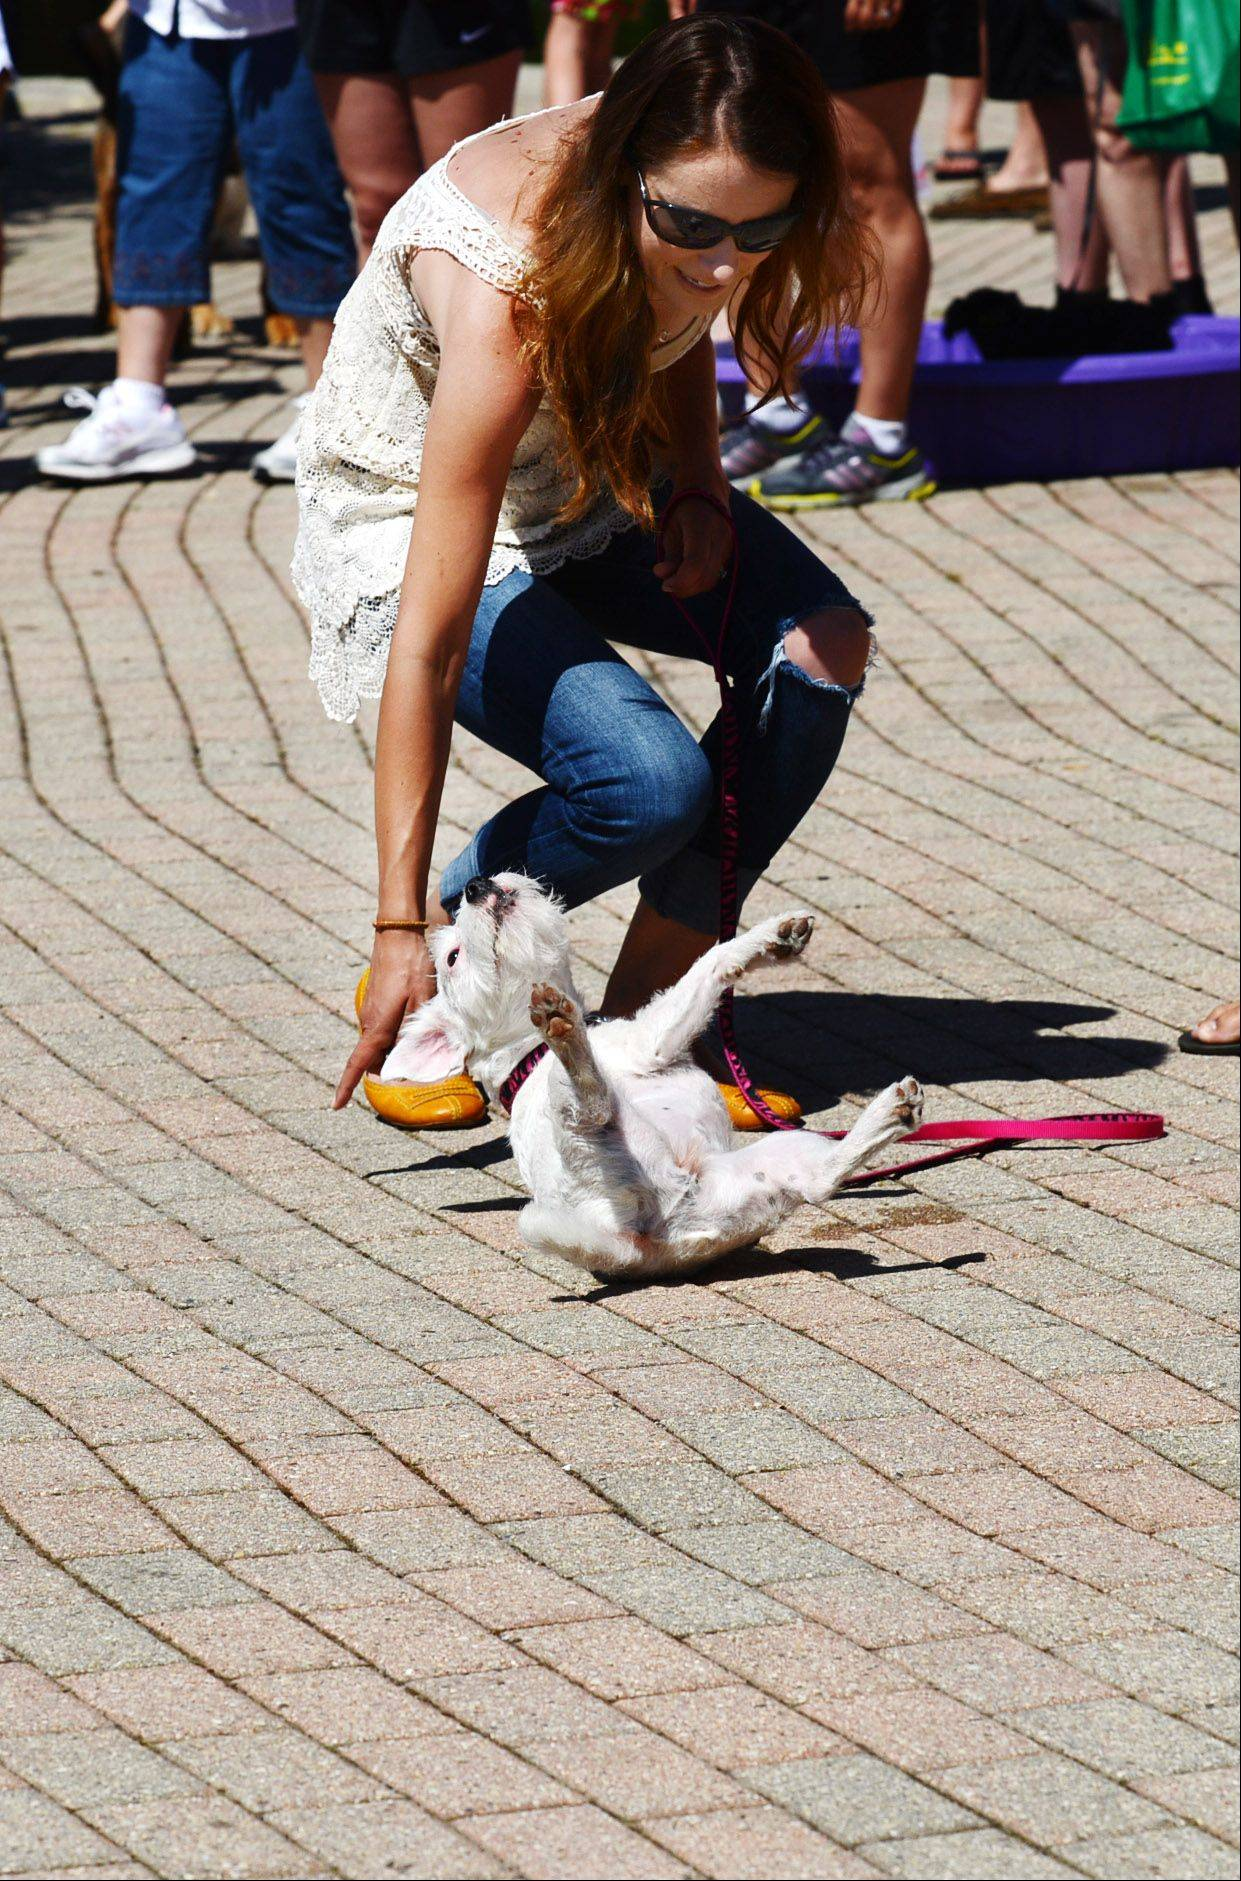 Aspen, a 1-year old Jack Russell Terrier, rolls over for his owner Jenny Bradley of Batavia at the Windmill City Festival on Saturday. The festival includes the Pet Parade, which lets members of the community show off their animal friends. The Windmill City Festival is held on the Riverwalk and will run through Sunday.